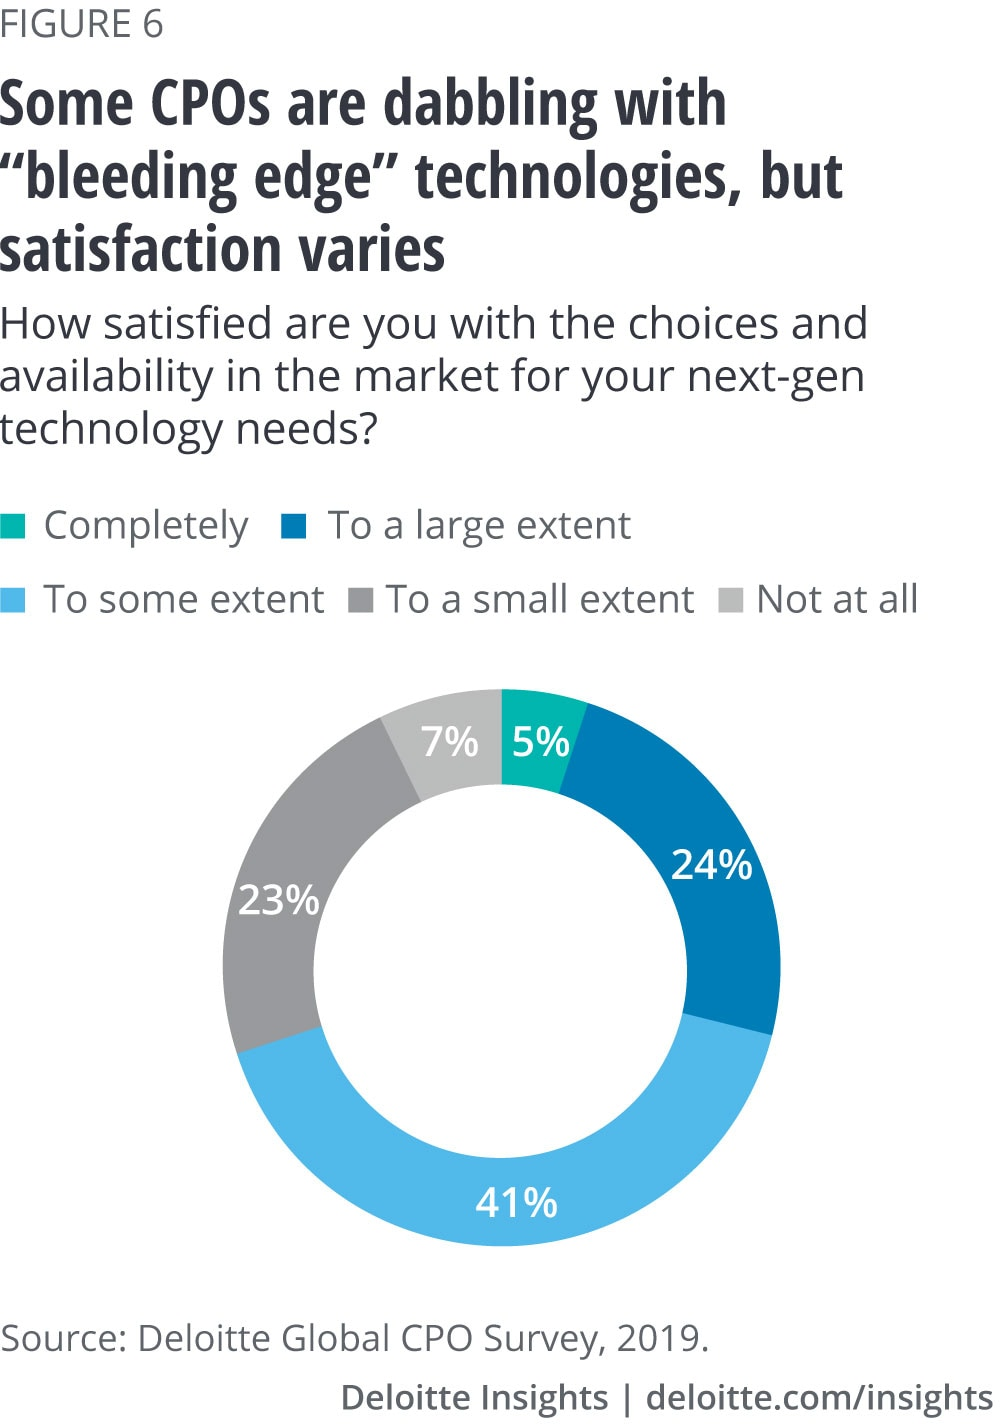 Some CPOs are dabbling with bleeding edge technologies, but satisfaction varies